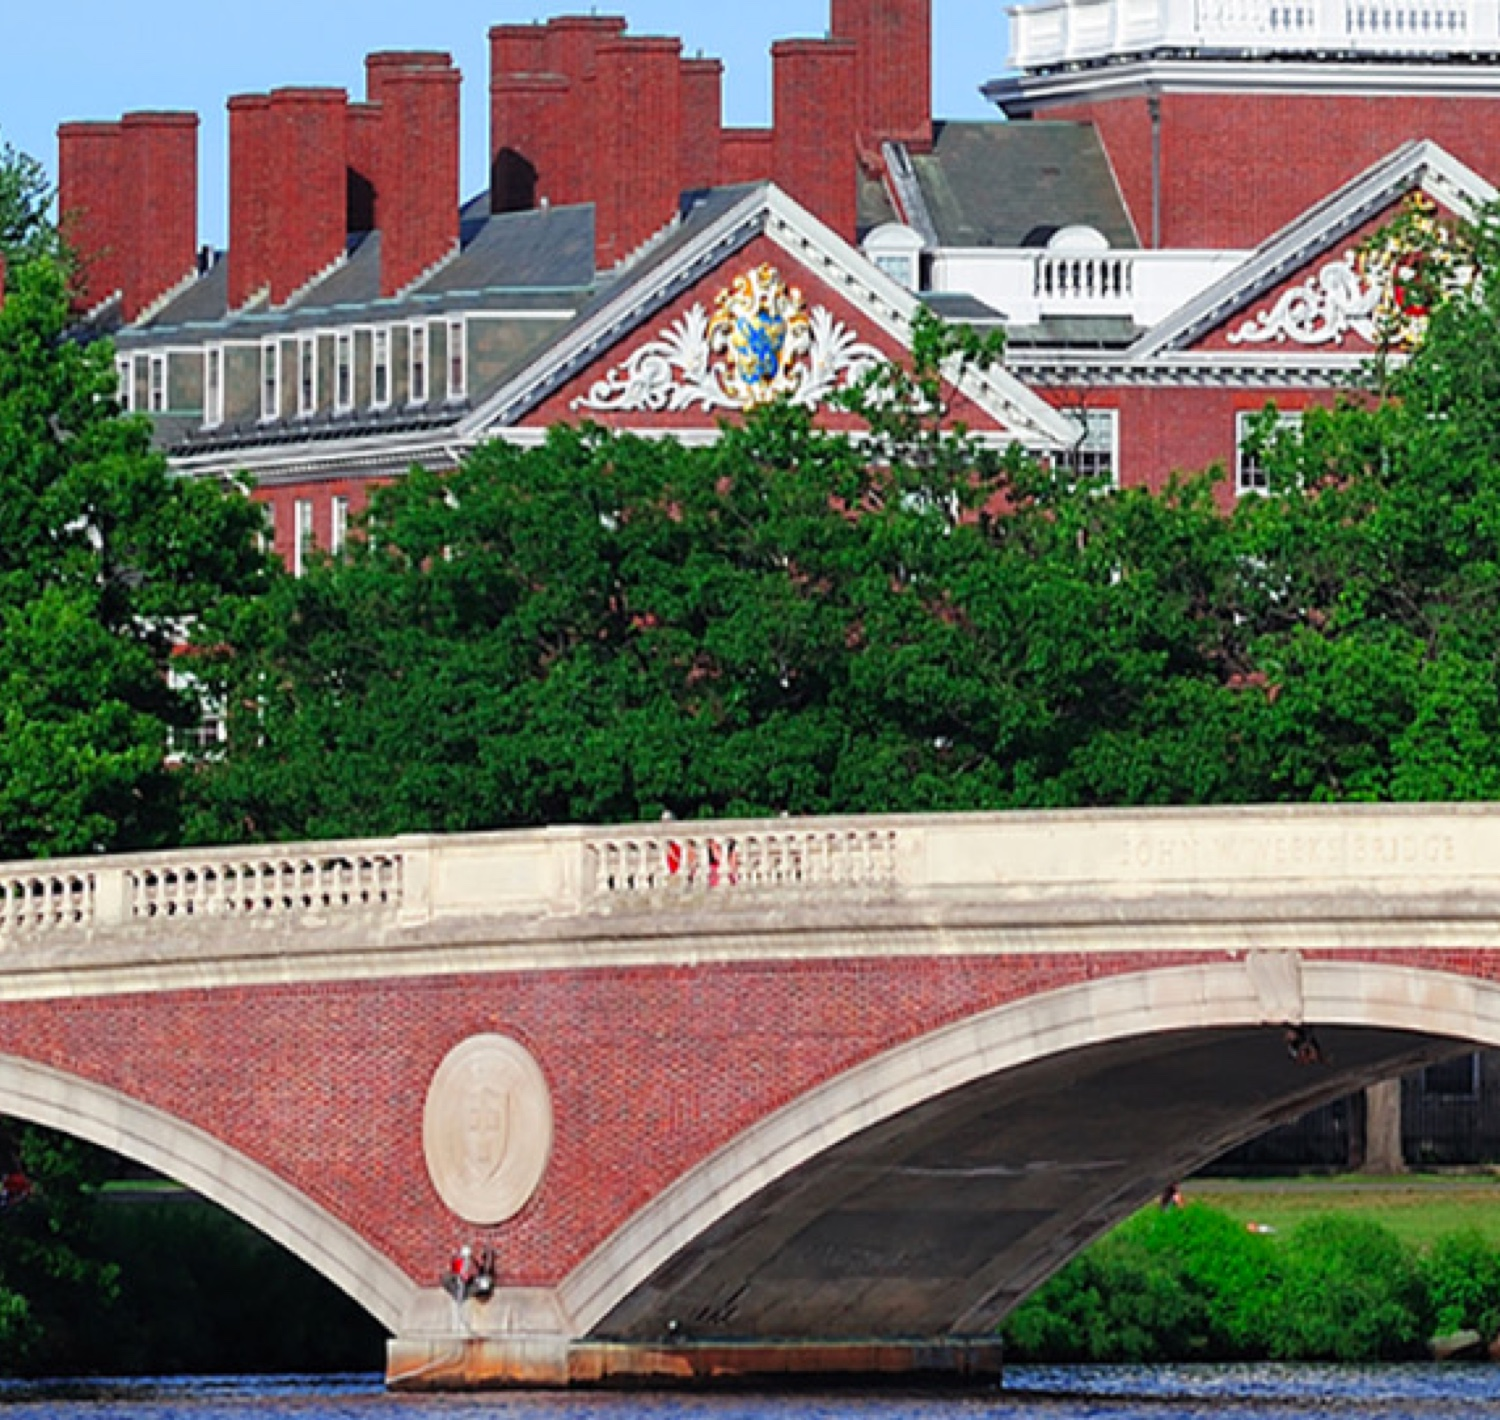 John W. Weeks bridge near Harvard University